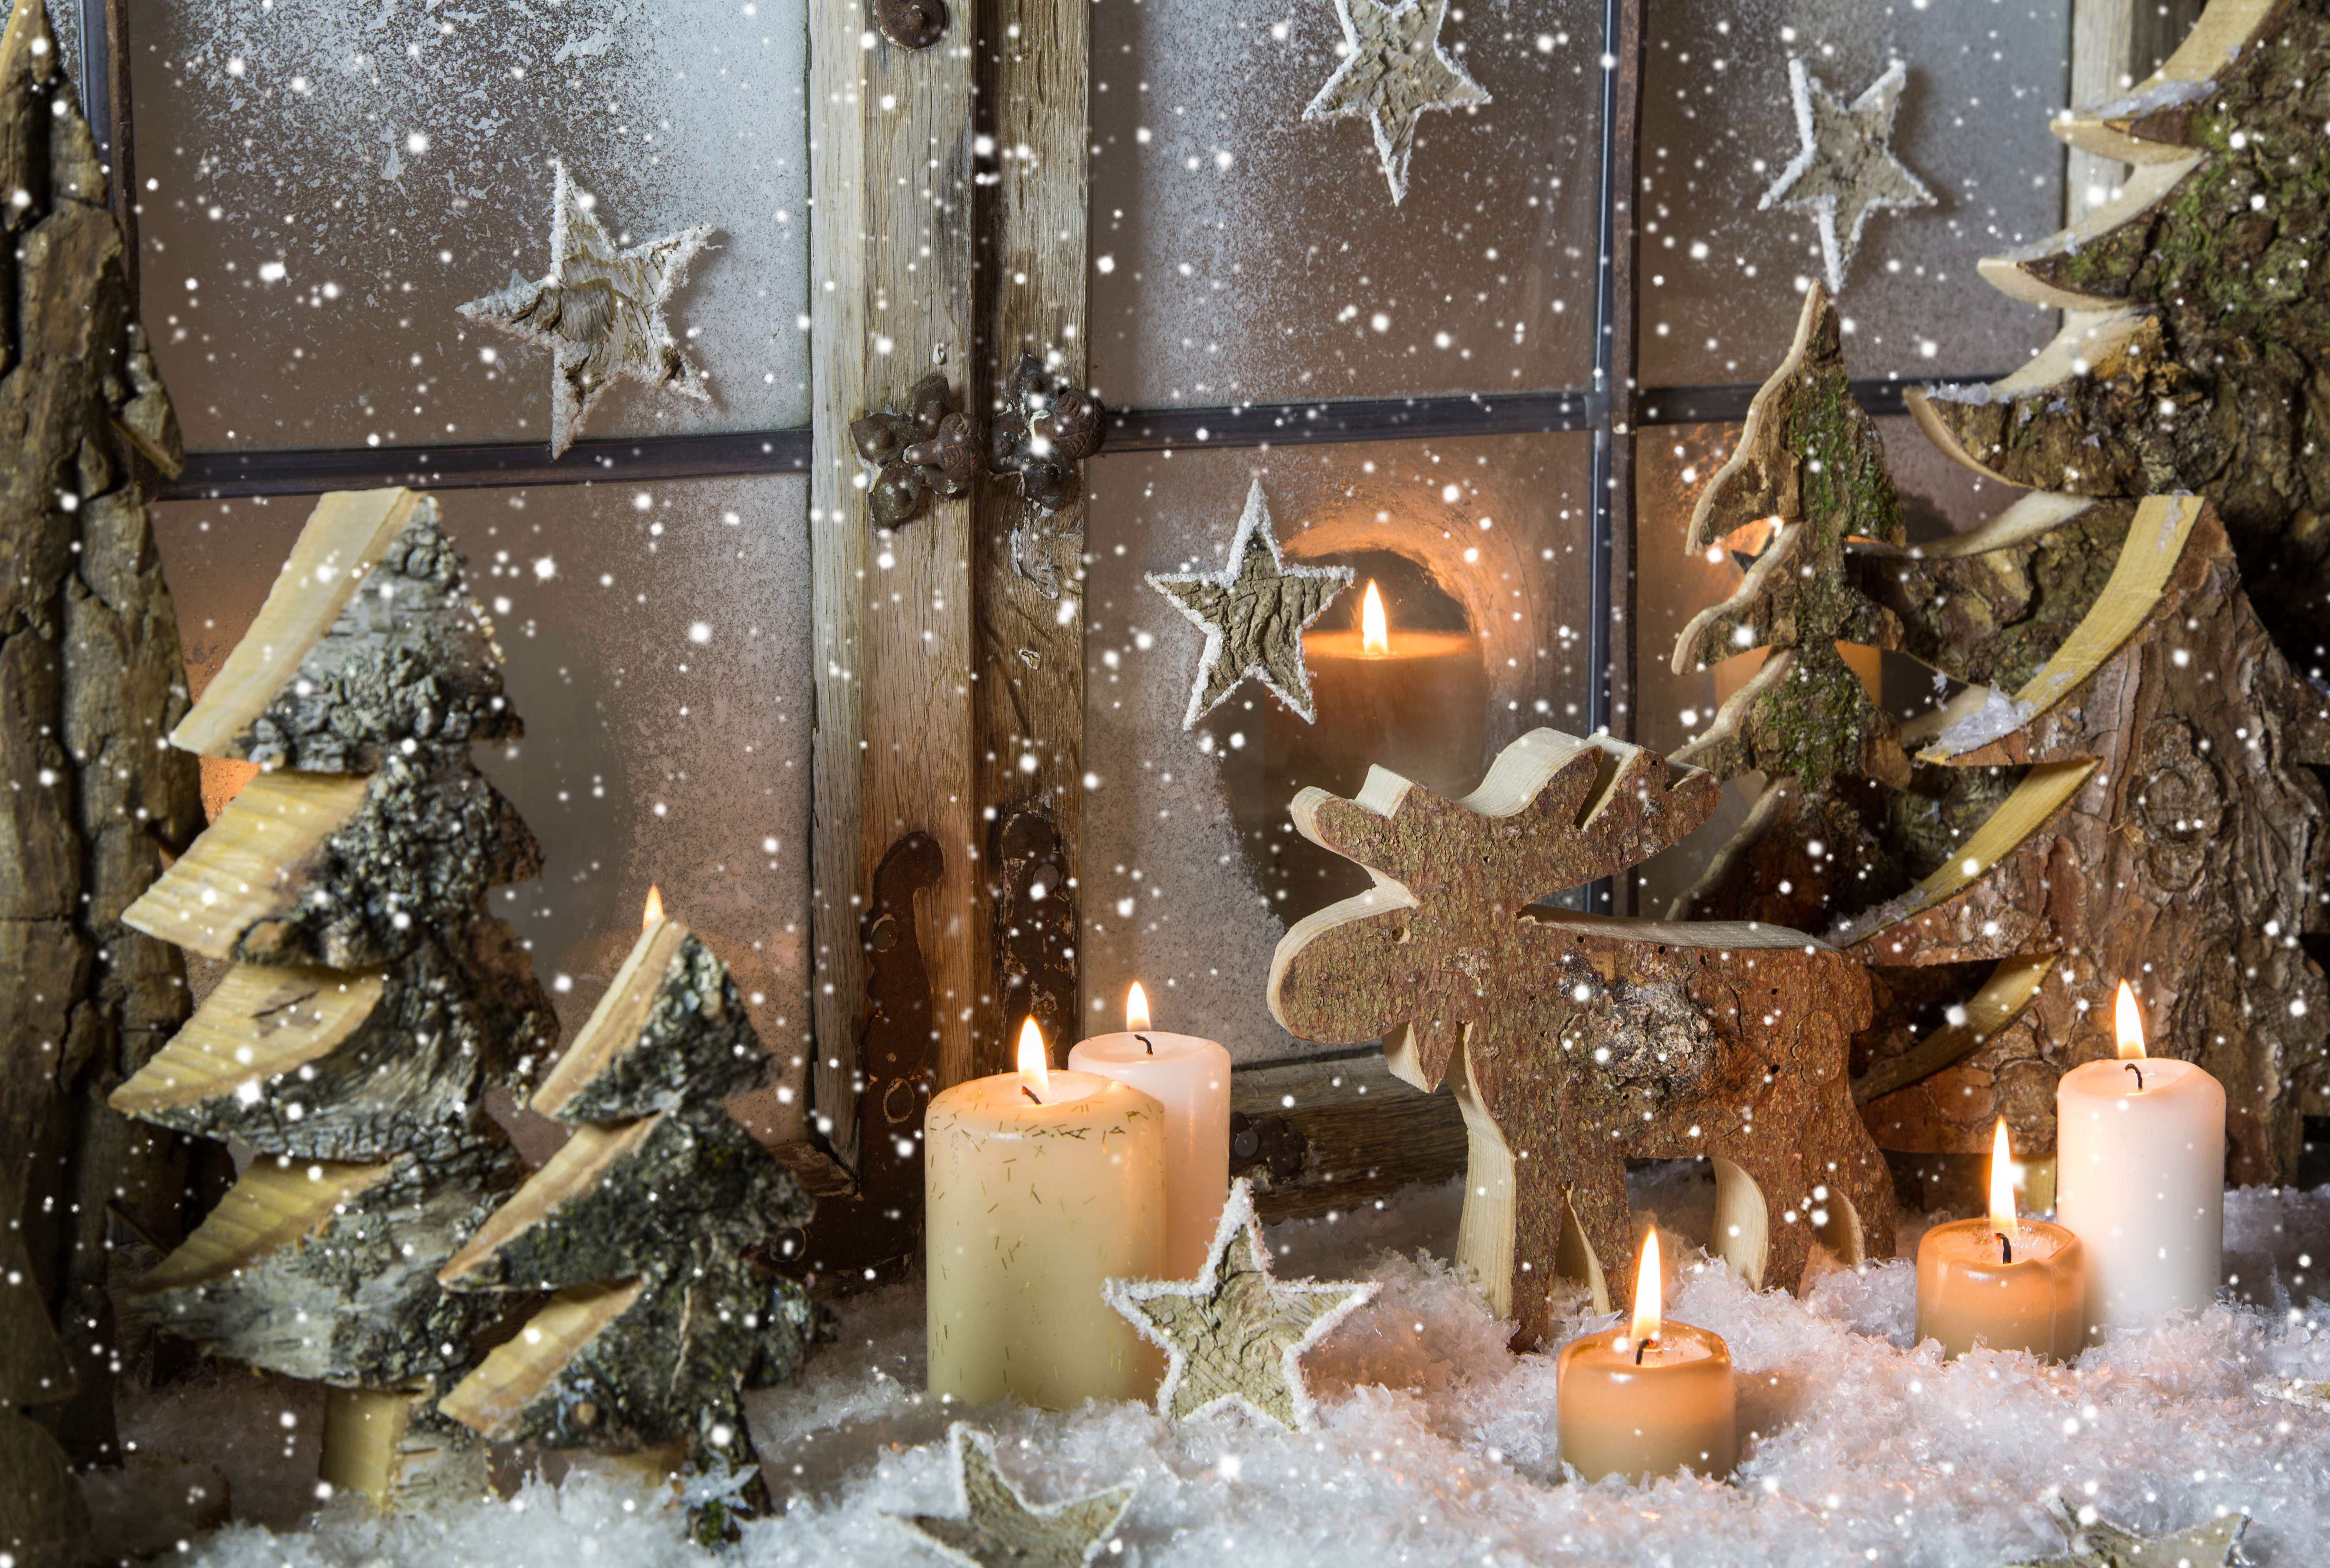 natural christmas window decoration of wood with snow - Diy Christmas Window Decorations